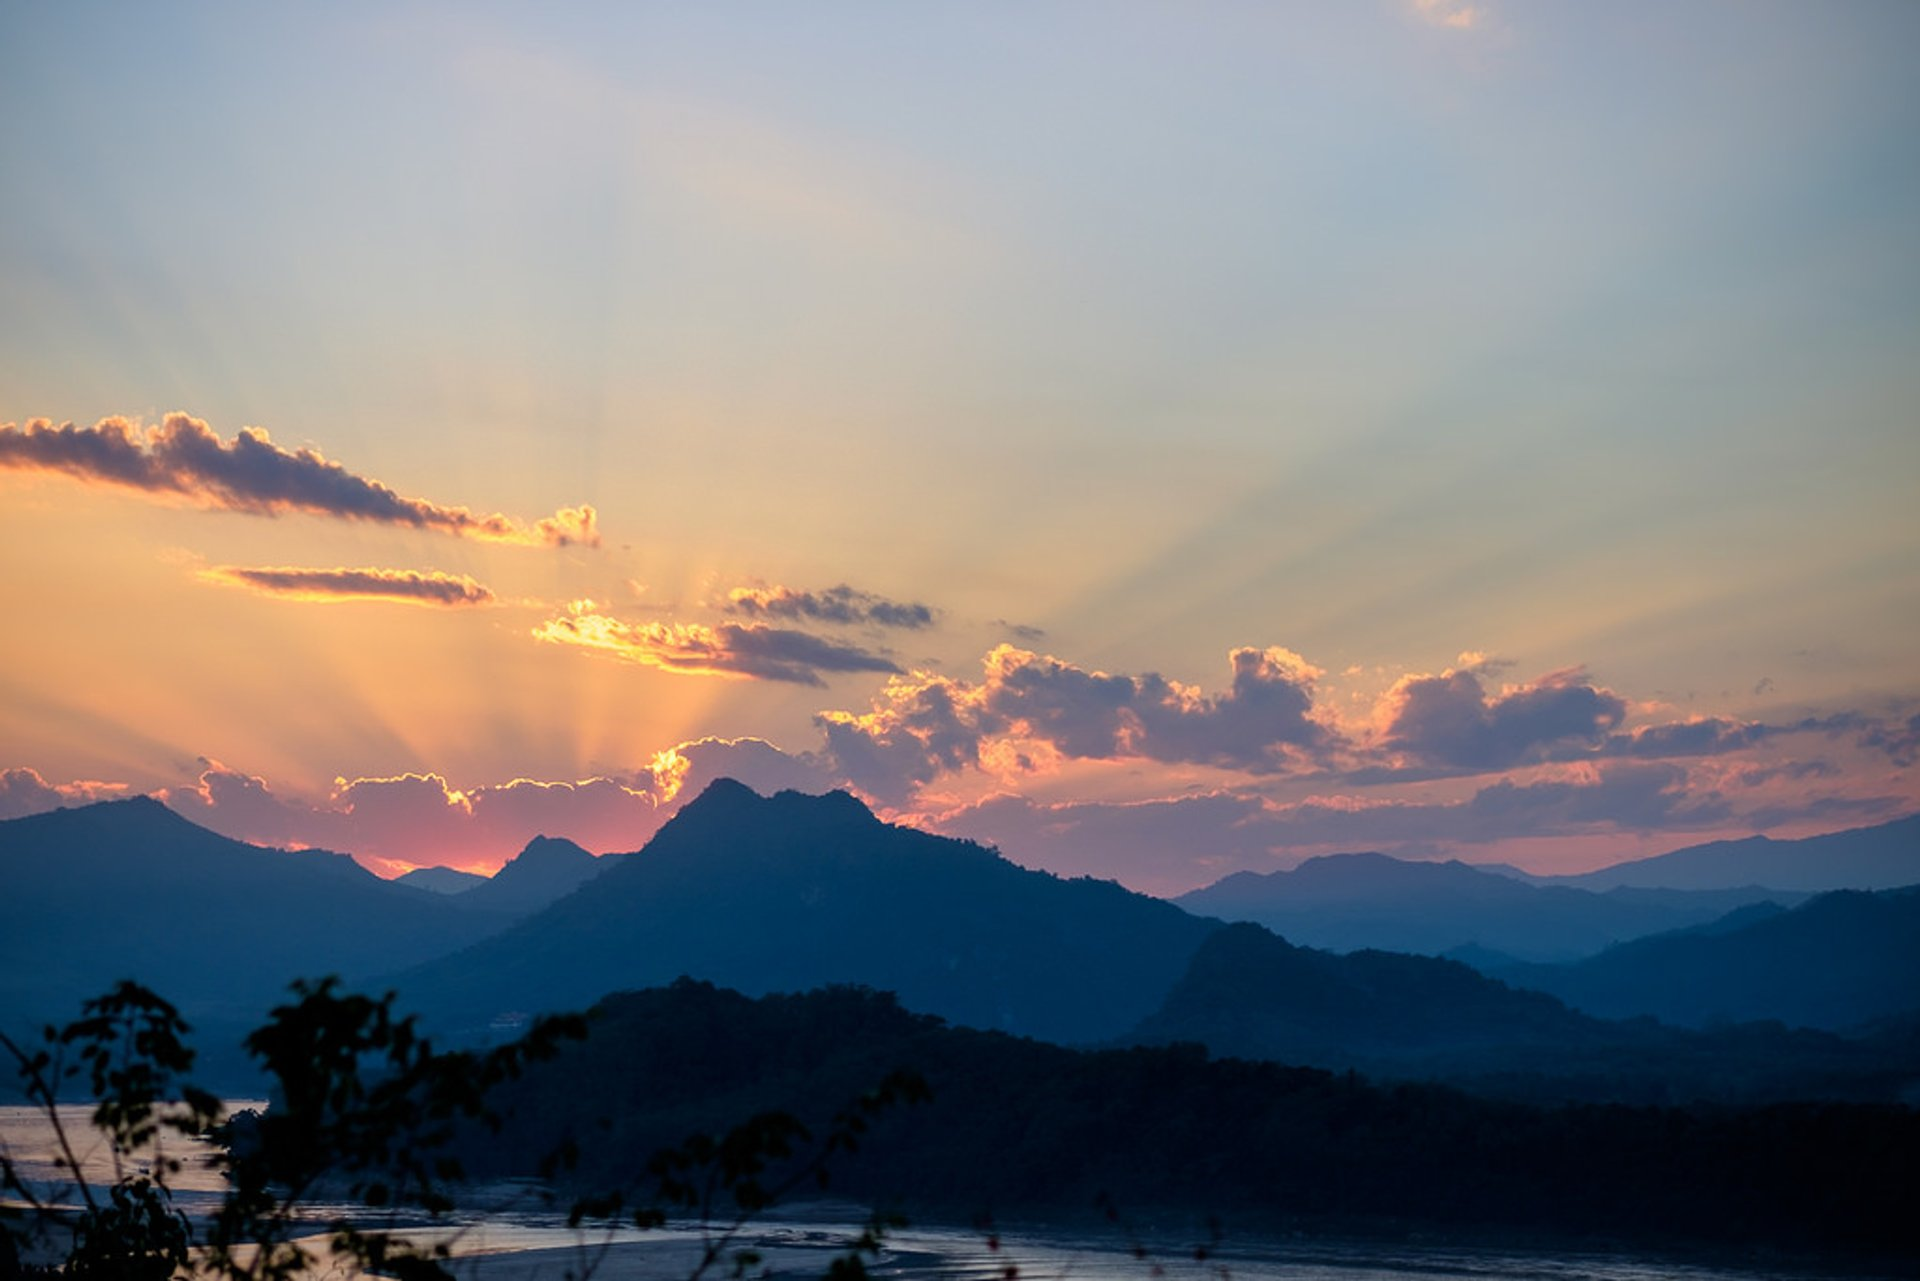 Sunset at Mount Phou Si in Laos 2019 - Best Time